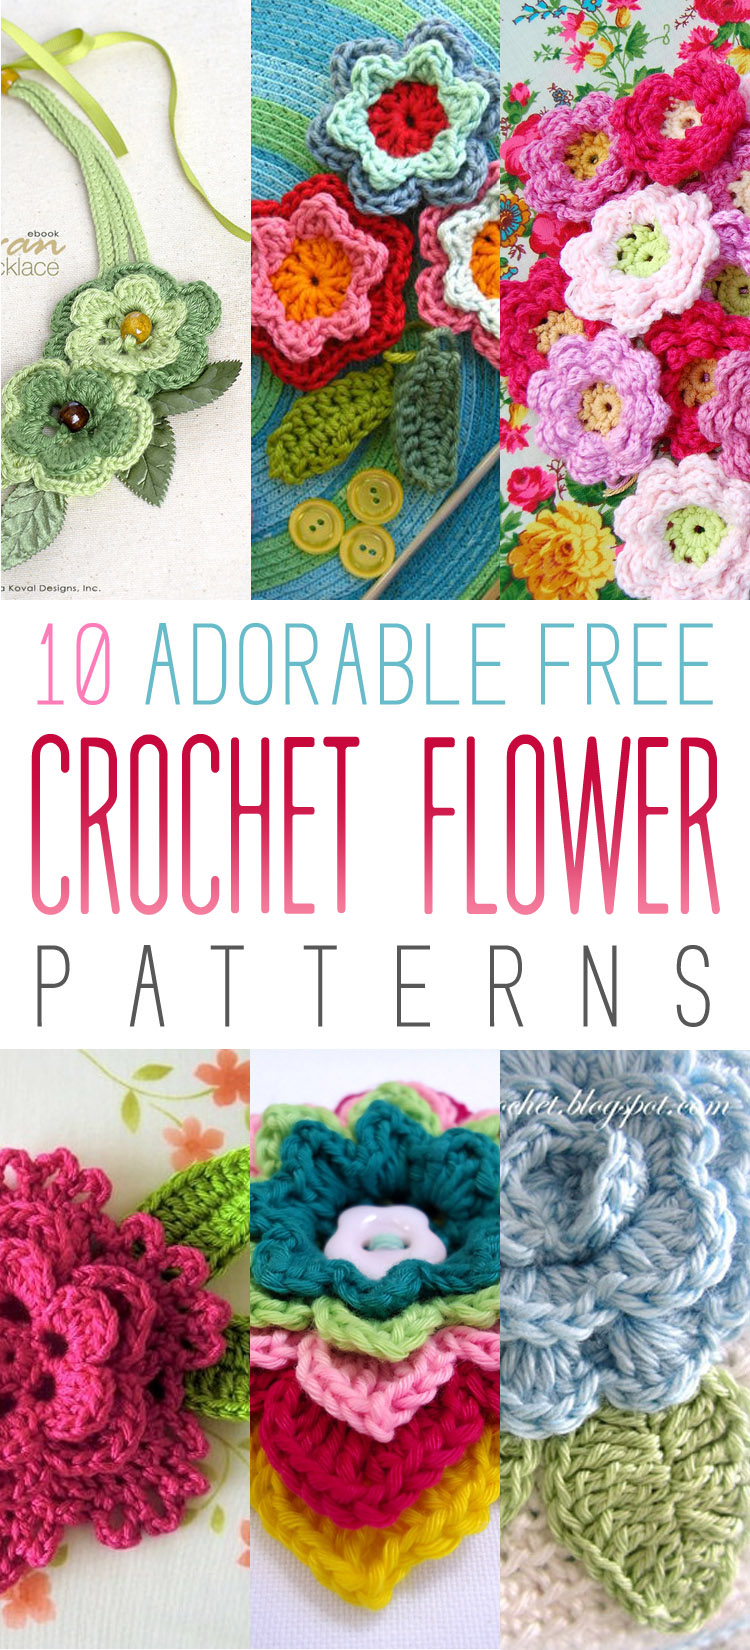 crochetflower-TOWER-1